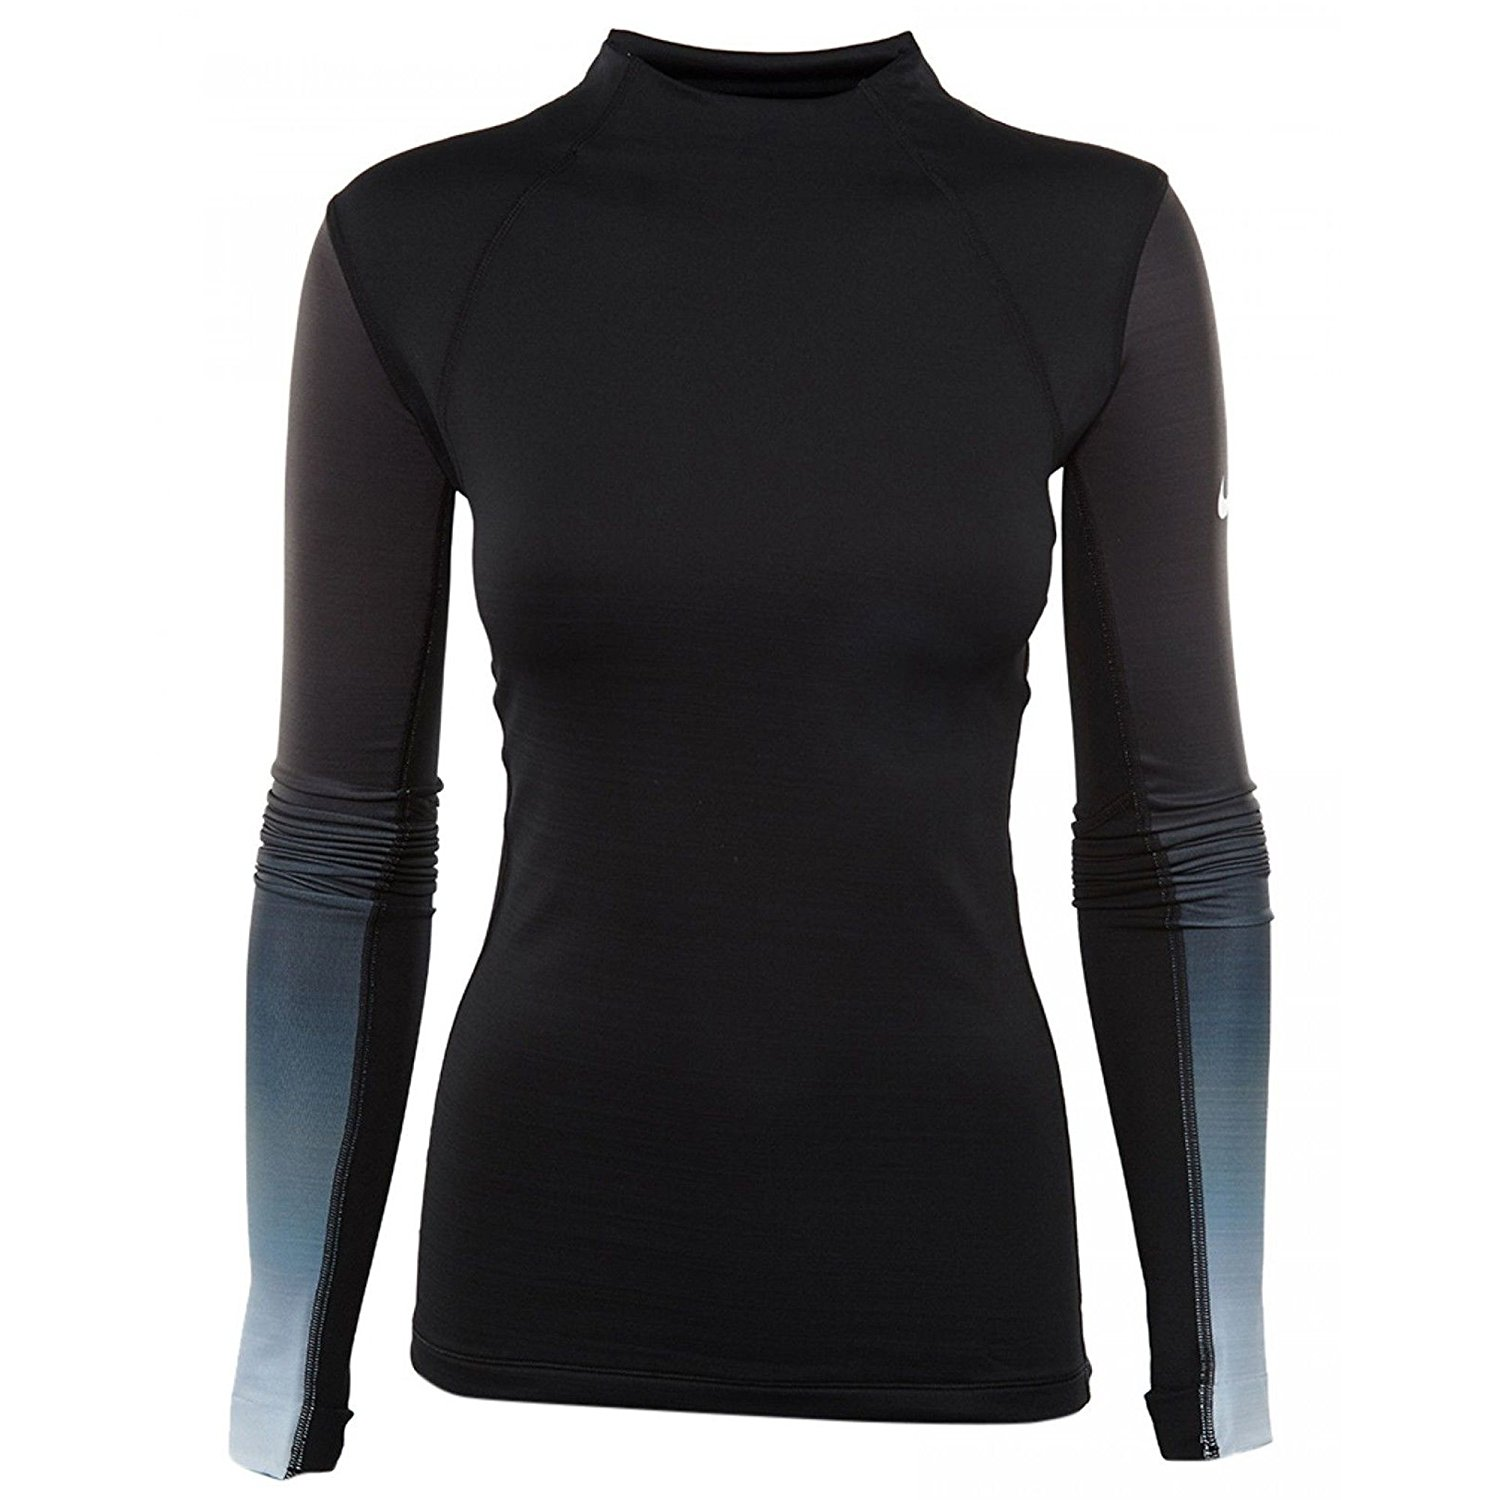 fca5df8bb8f03 Nike Women's Pro Hyperwarm Long Sleeve Training Top | eBay